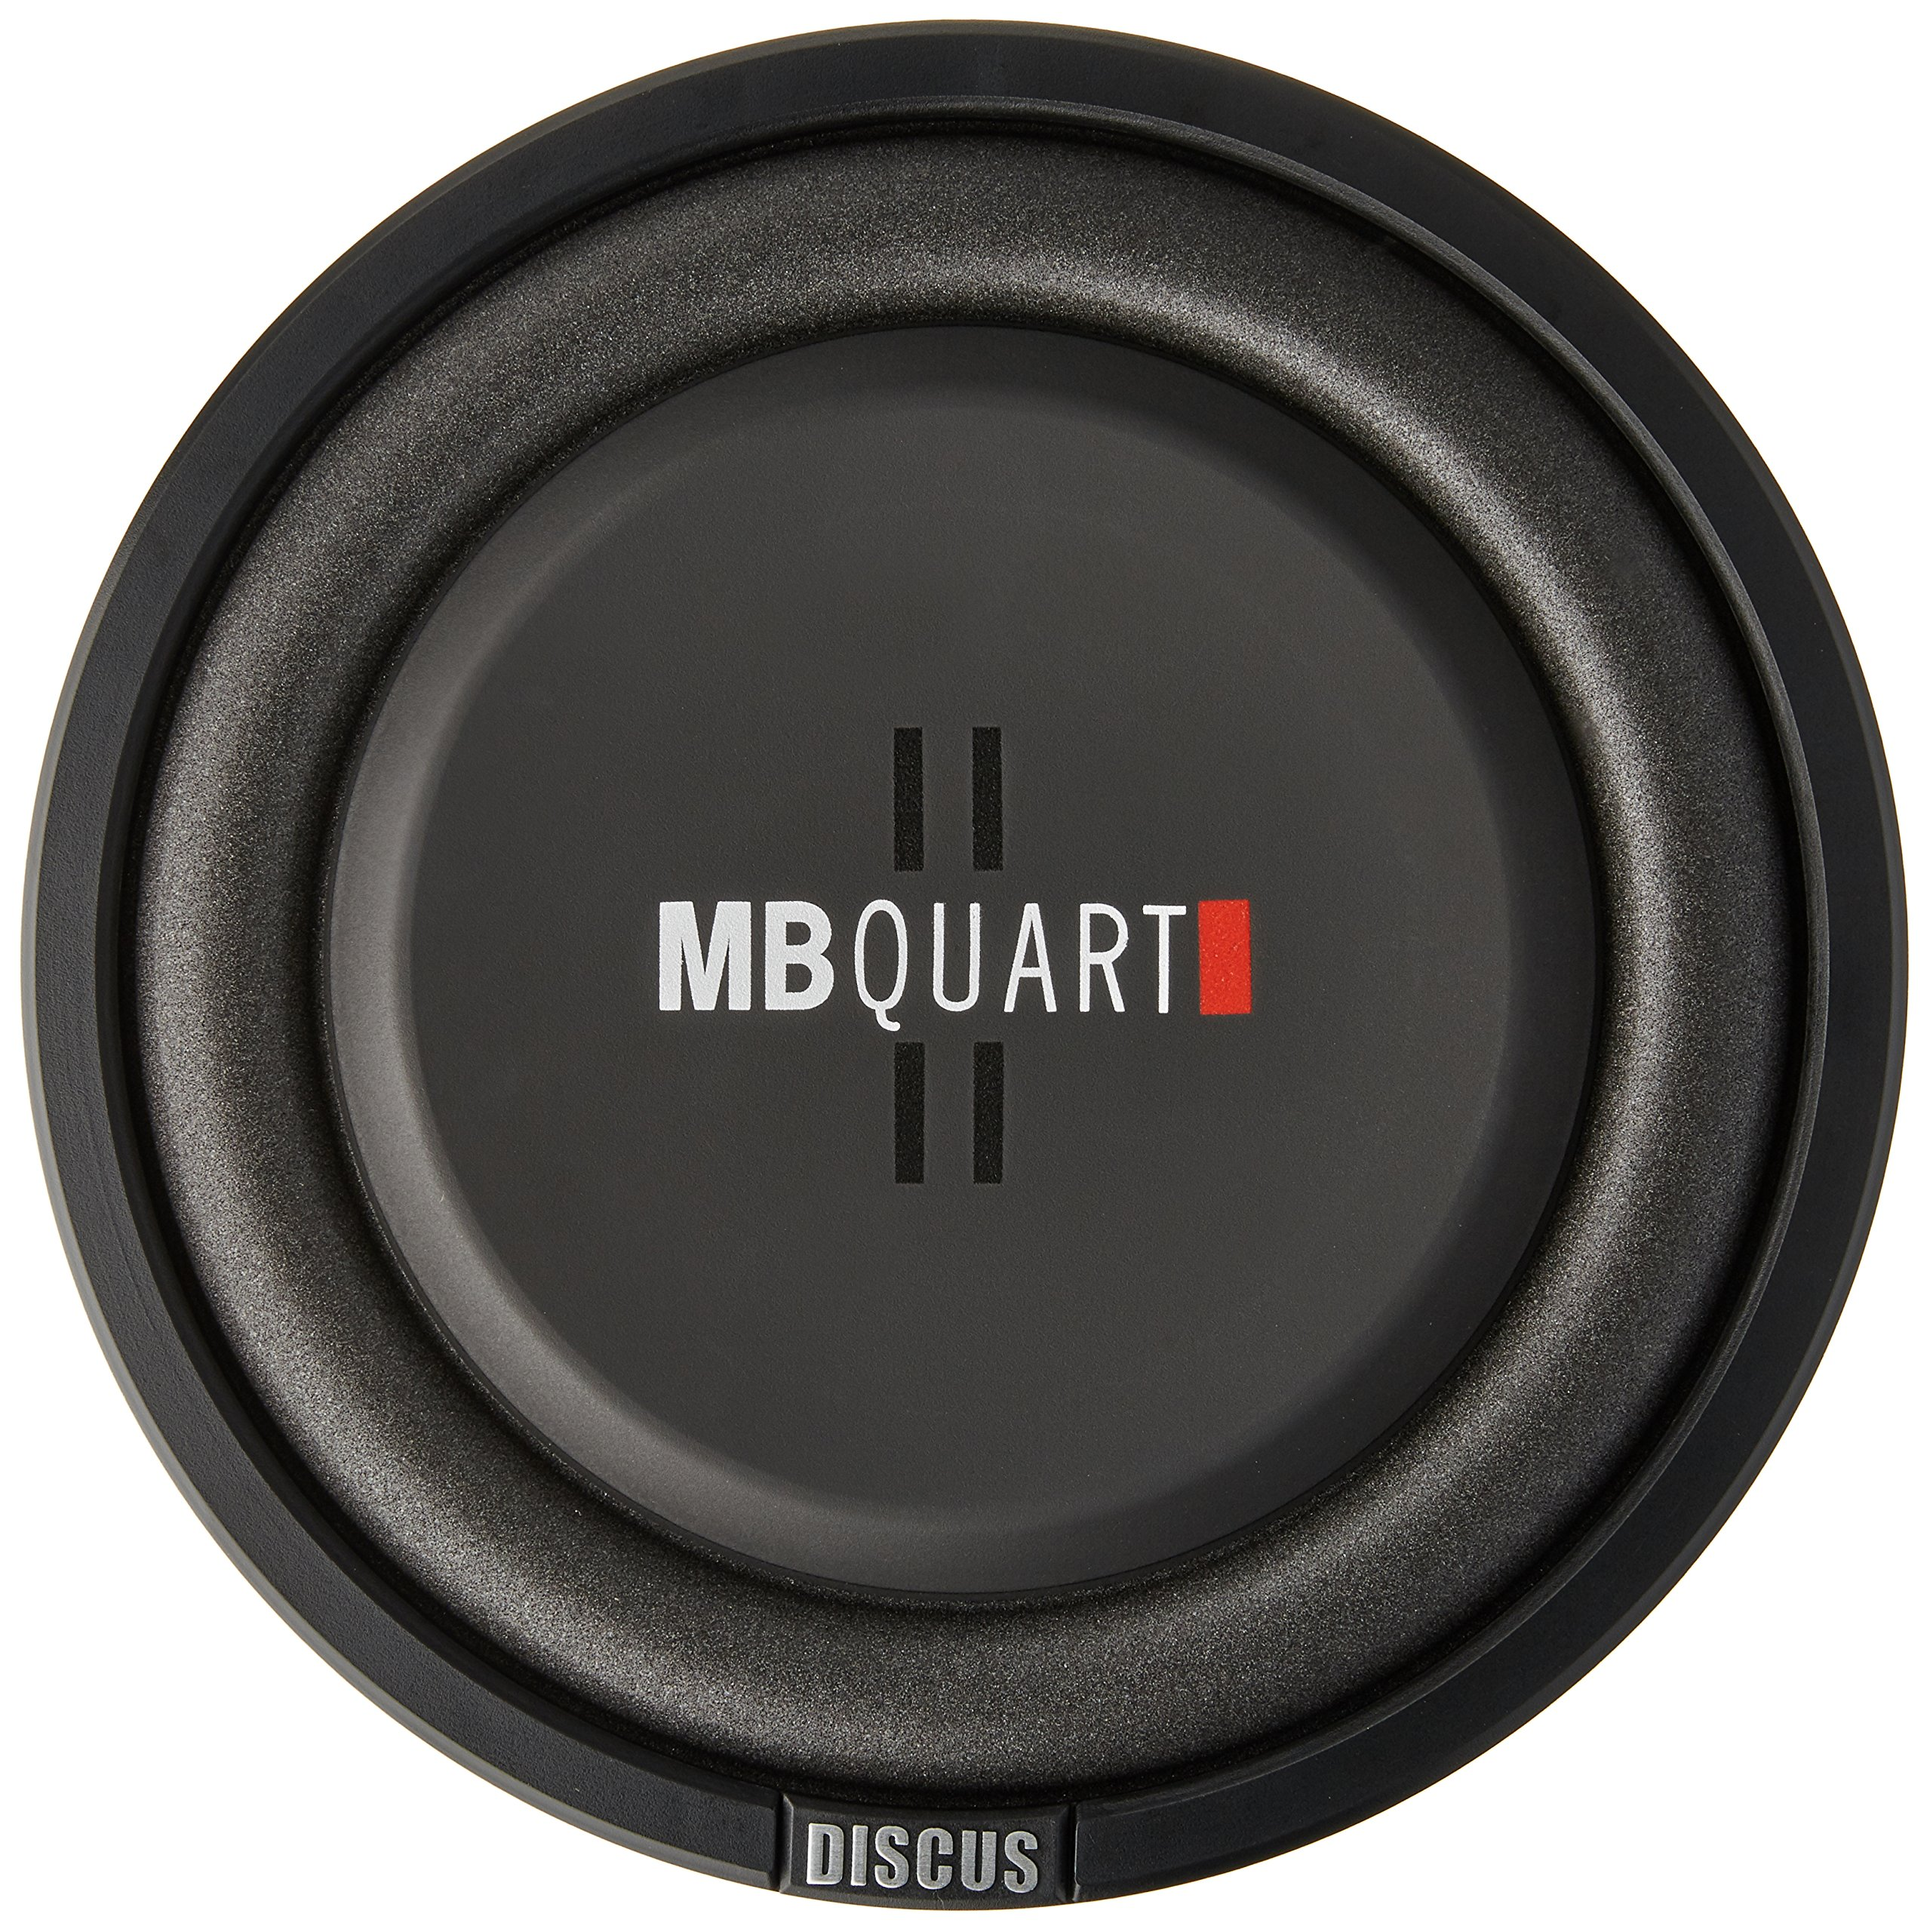 MB Quart DS1-254 Discus Series, 400W, 10'' Shallow Subwoofer, Subwoofers, Bass Boost, Stereo, Speaker, Truck, Car, Boat by MB Quart